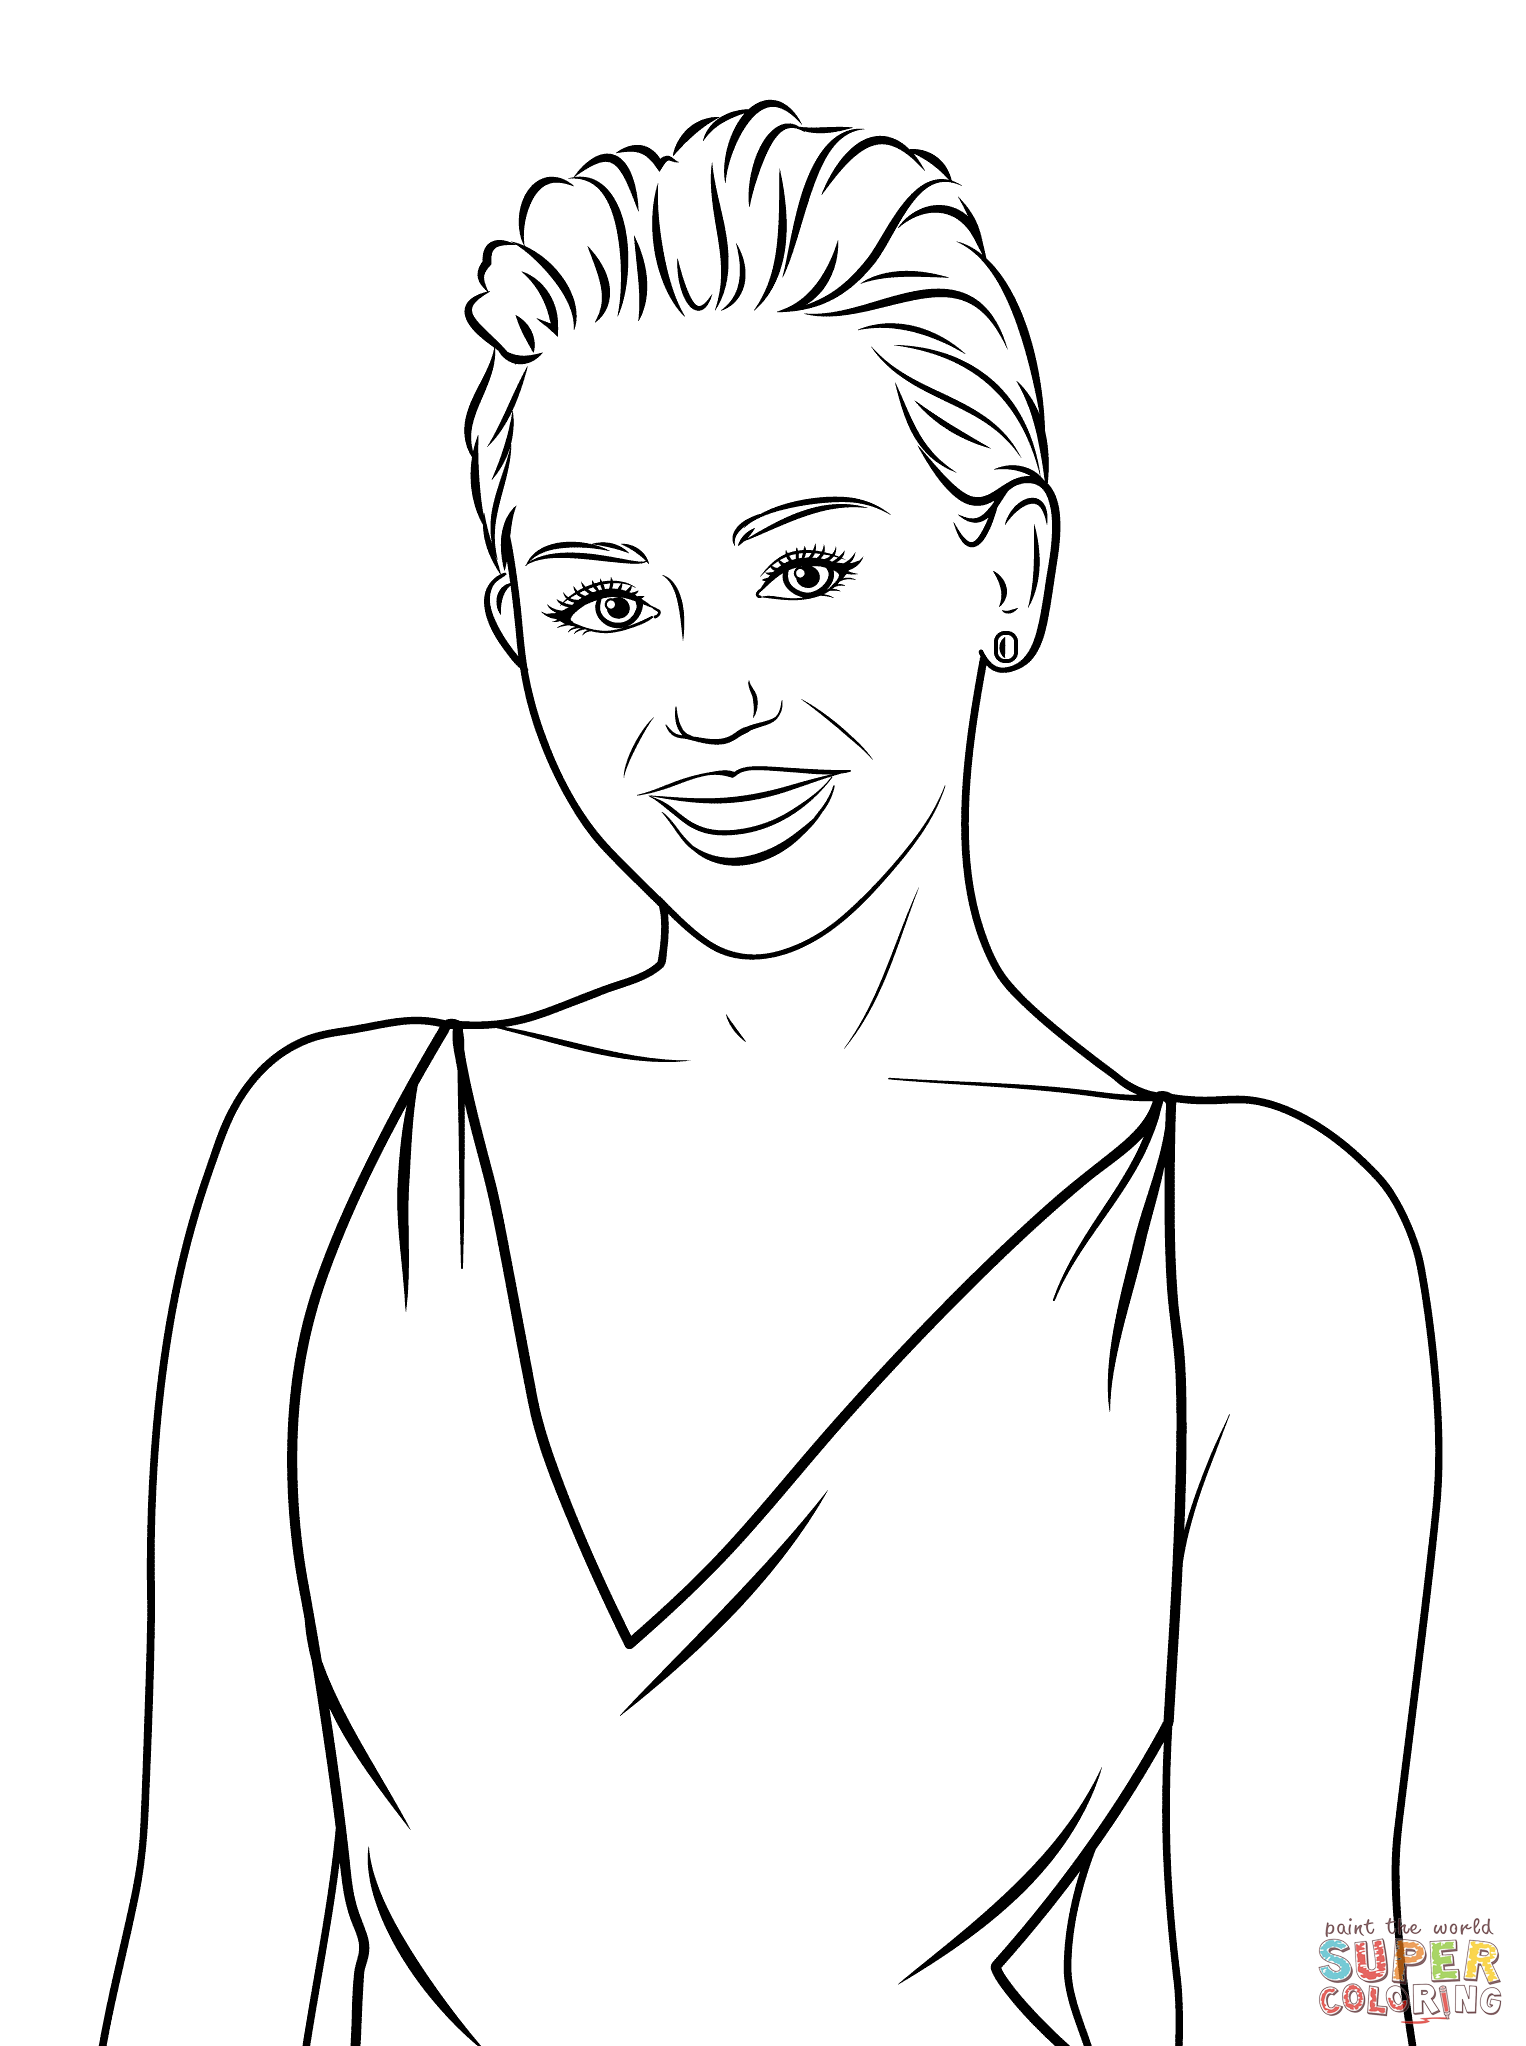 Miley Cyrus Coloring Pages Free Printable Online Miley